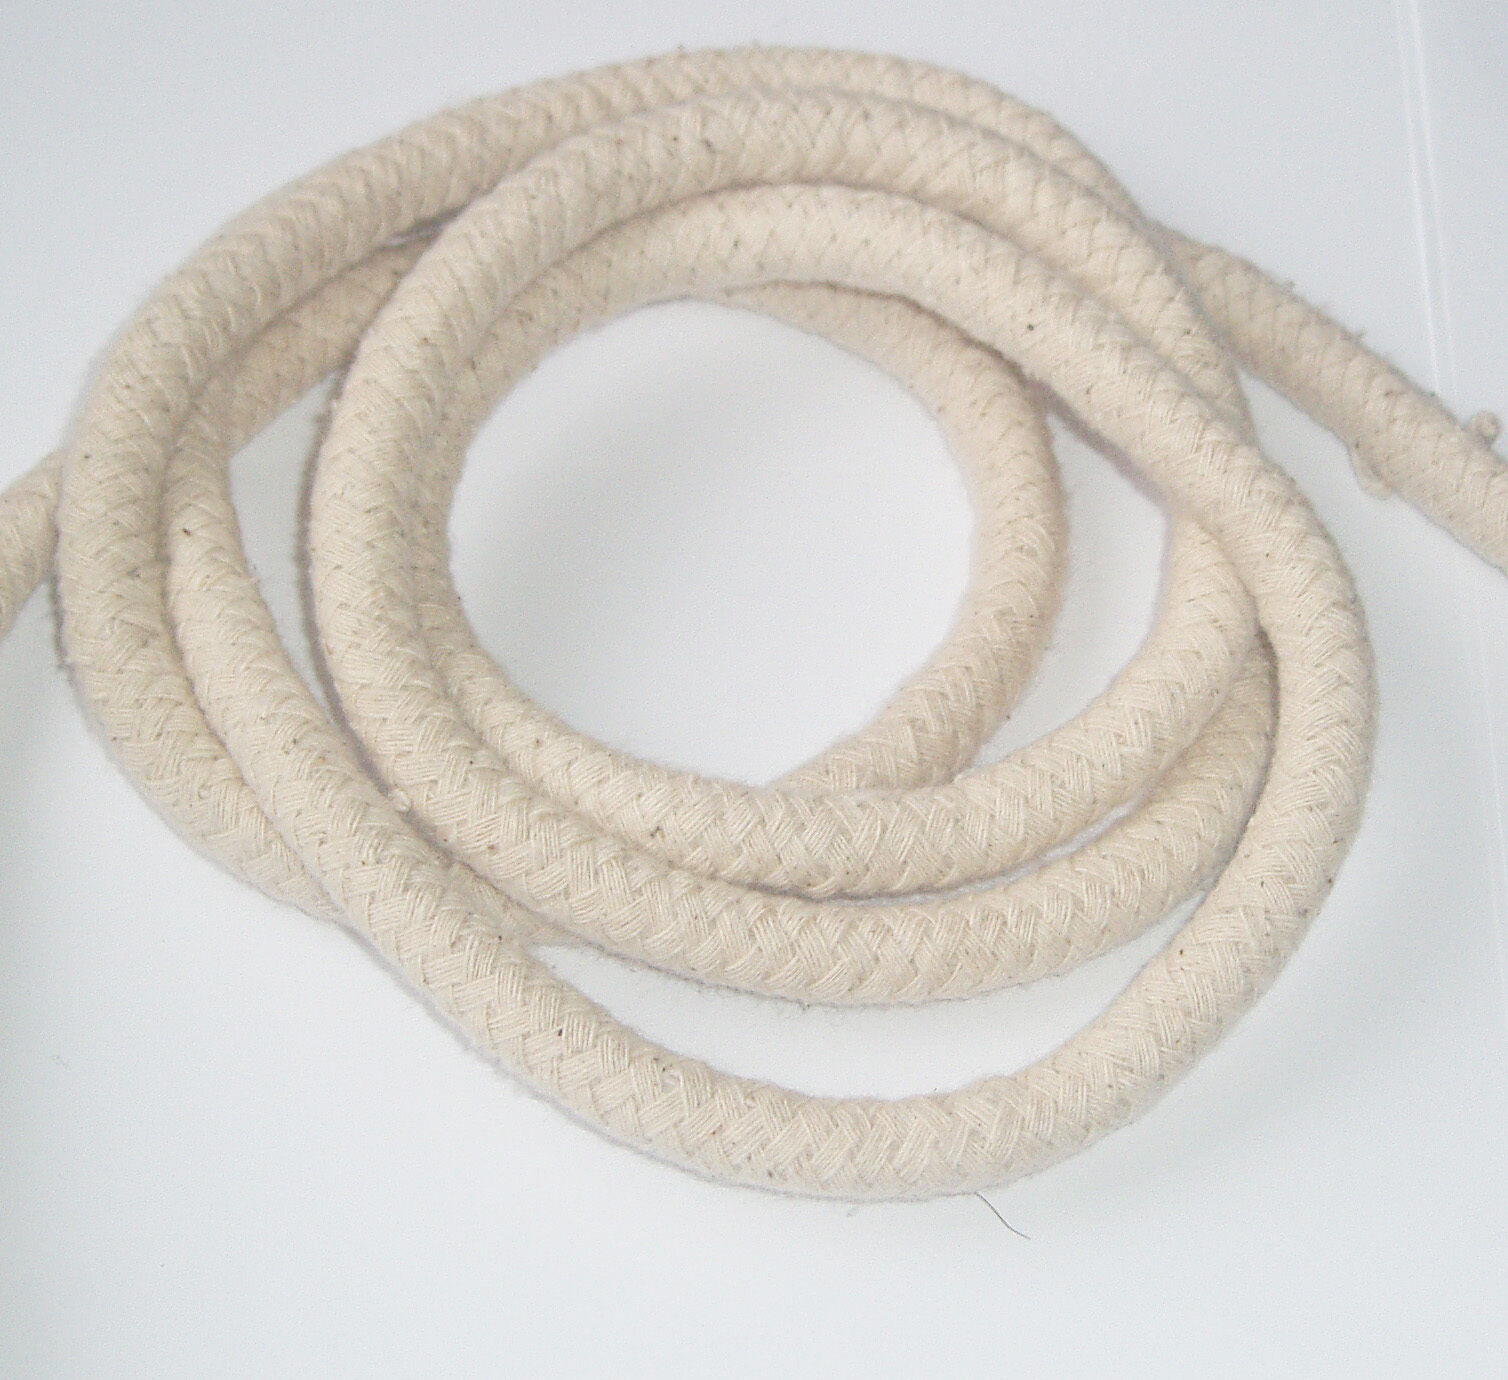 100% Natural Cotton Braided Rope General Soft  Sash Cord Bondage Bag String